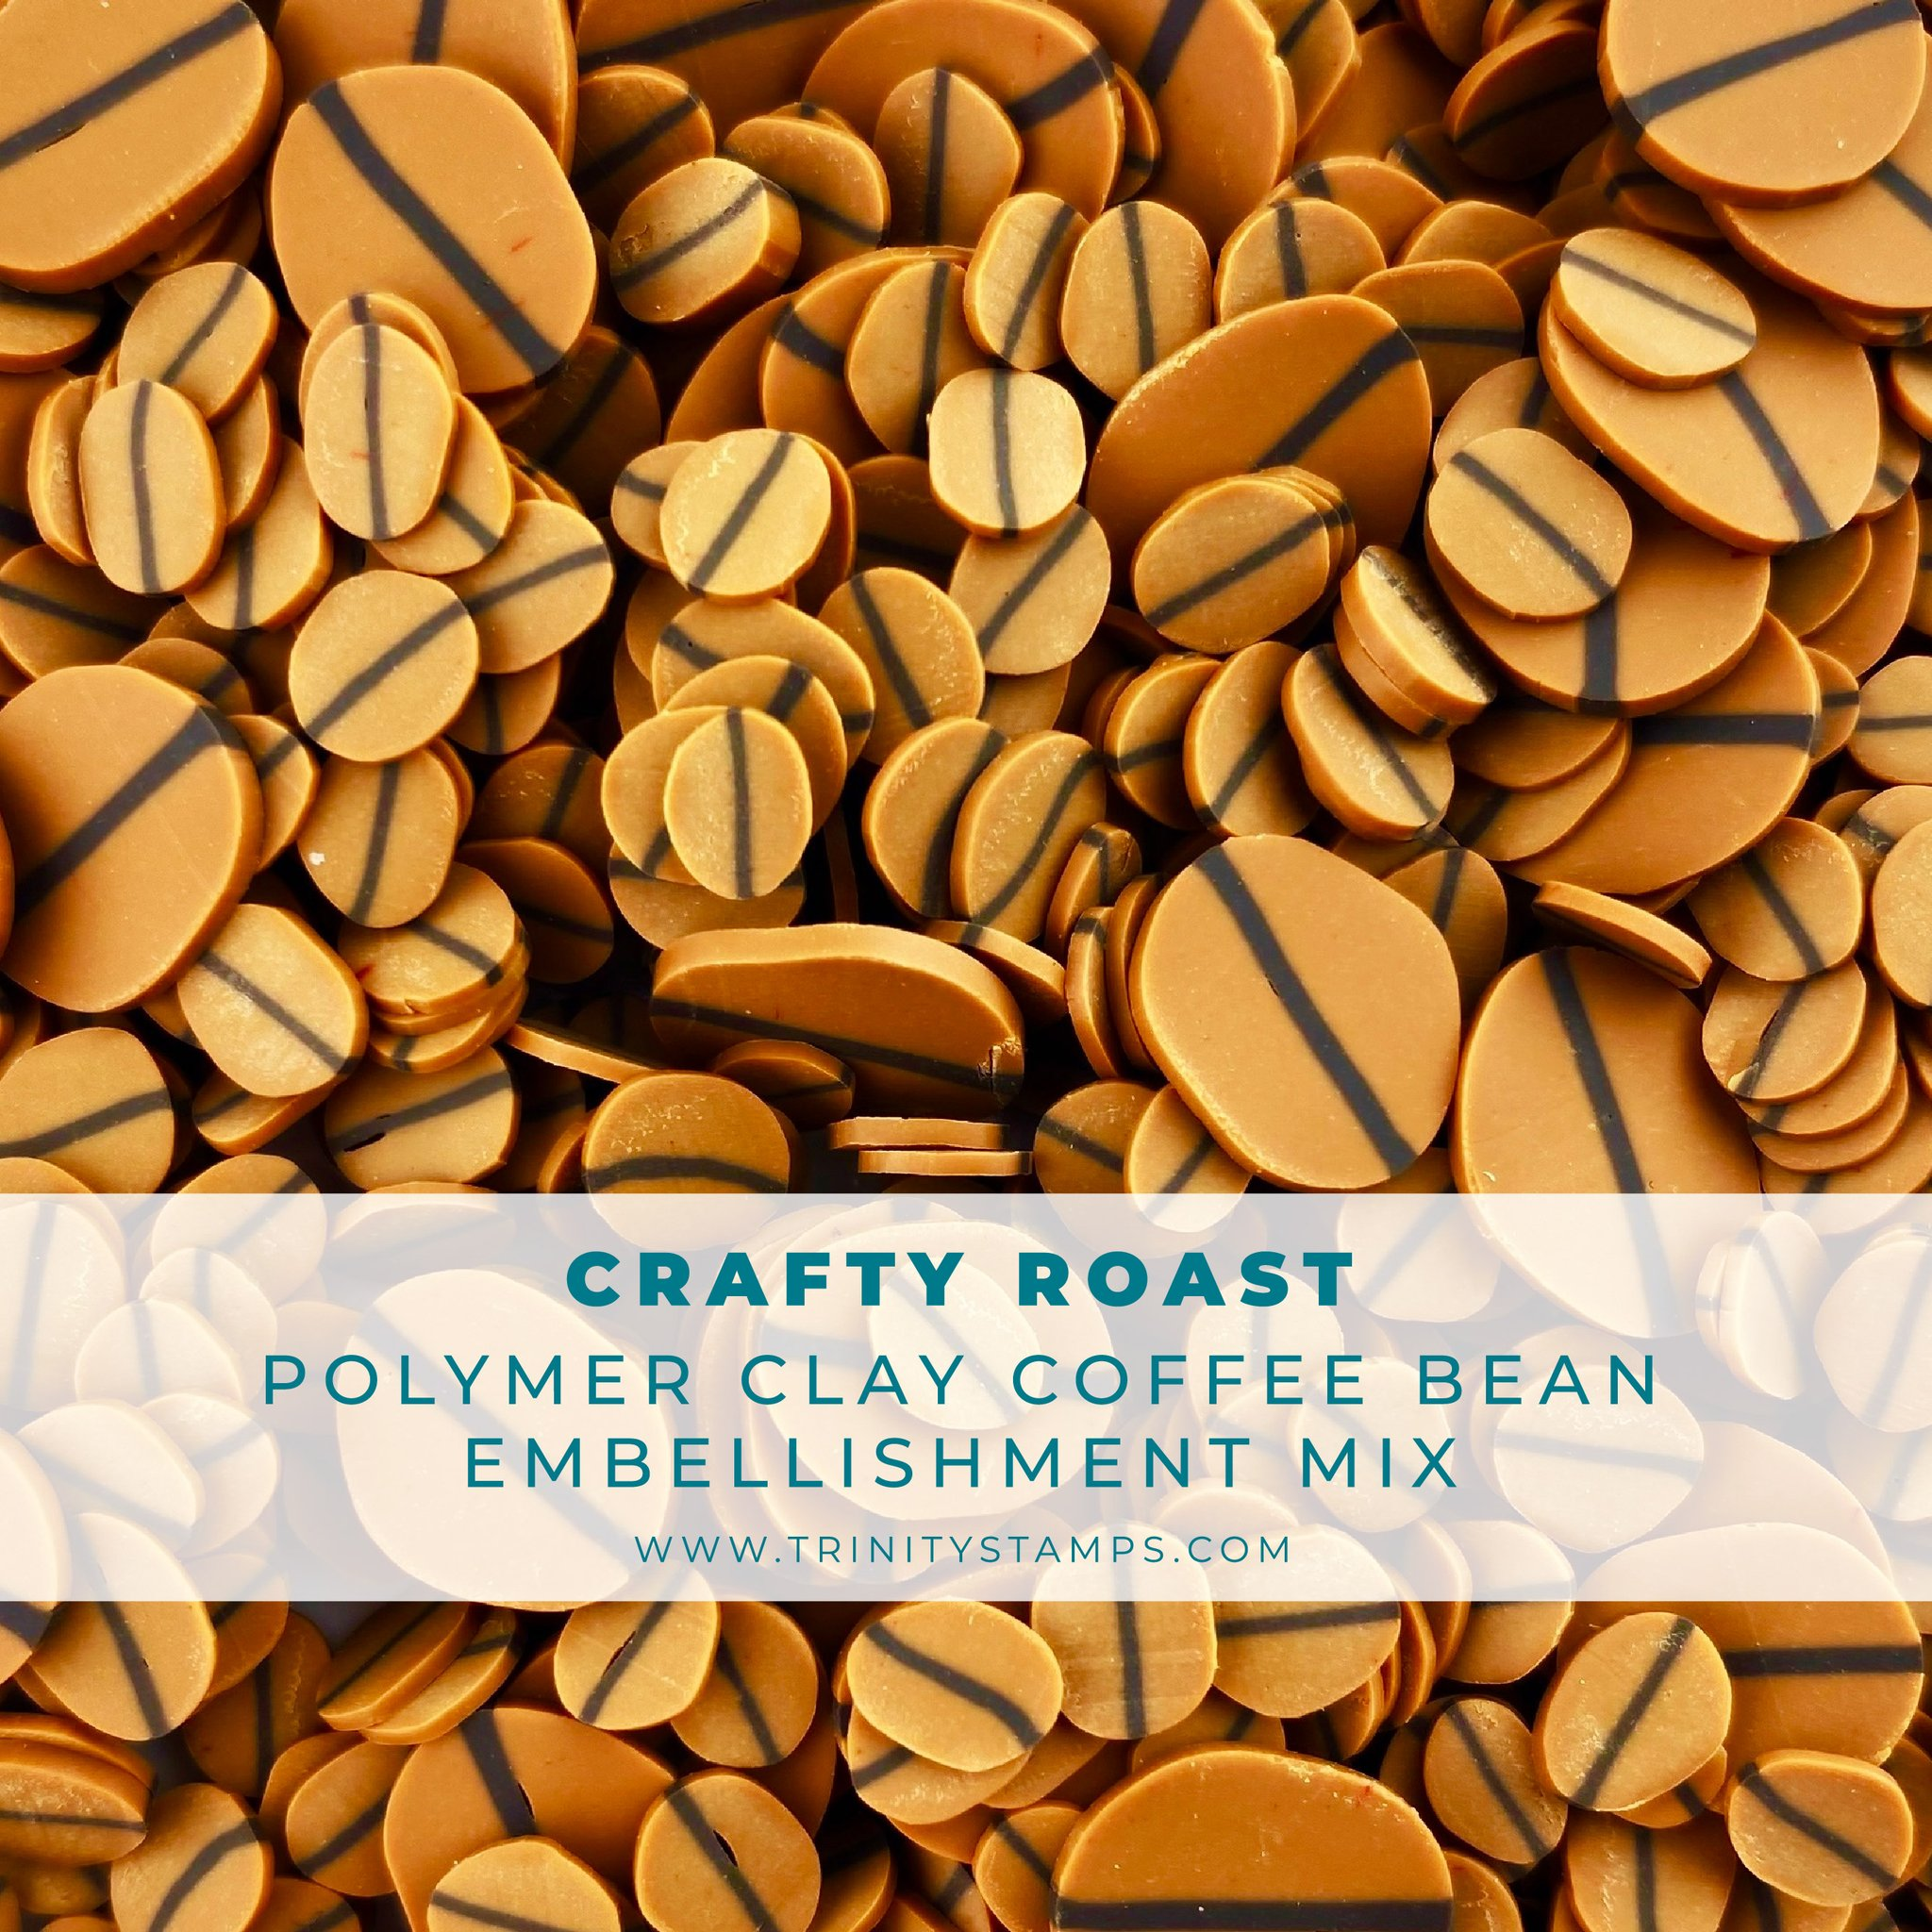 *NEW* - Trinity Stamps - Crafty Roast Clay Coffee Bean Embellishment Mix